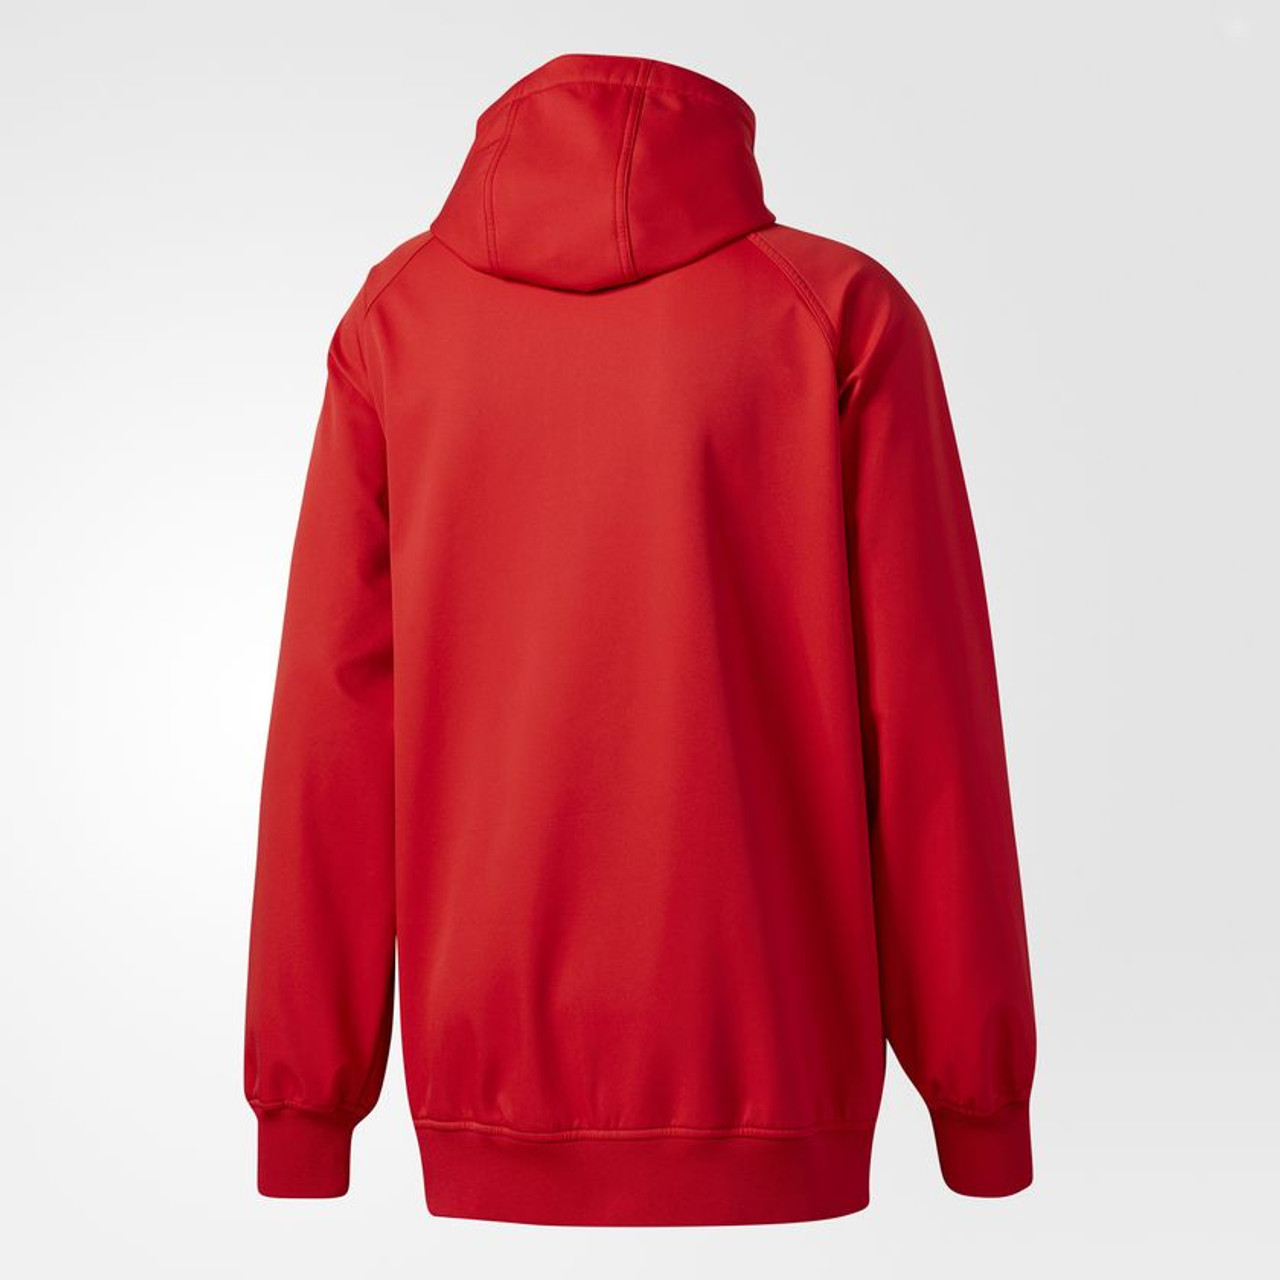 sale retailer 0442b a6139 Adidas Greeley Softshell Jacket Mens Red White   Boardparadise.com